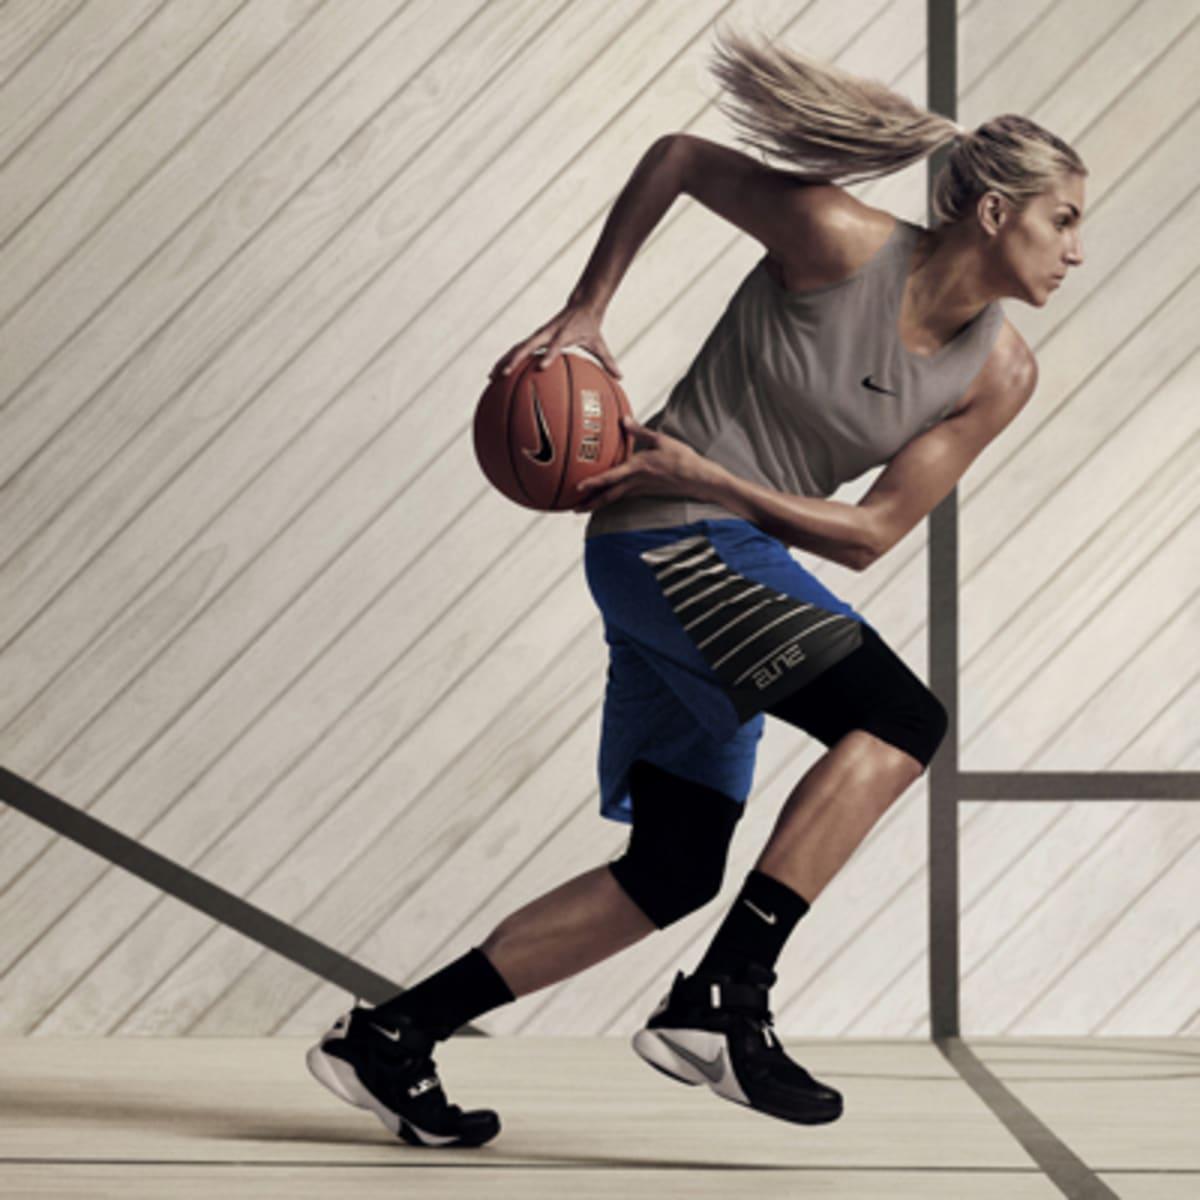 Flojamente Susceptibles a Hora  Delle Donne Helps Unveil Nike Line - SI Kids: Sports News for Kids, Kids  Games and More